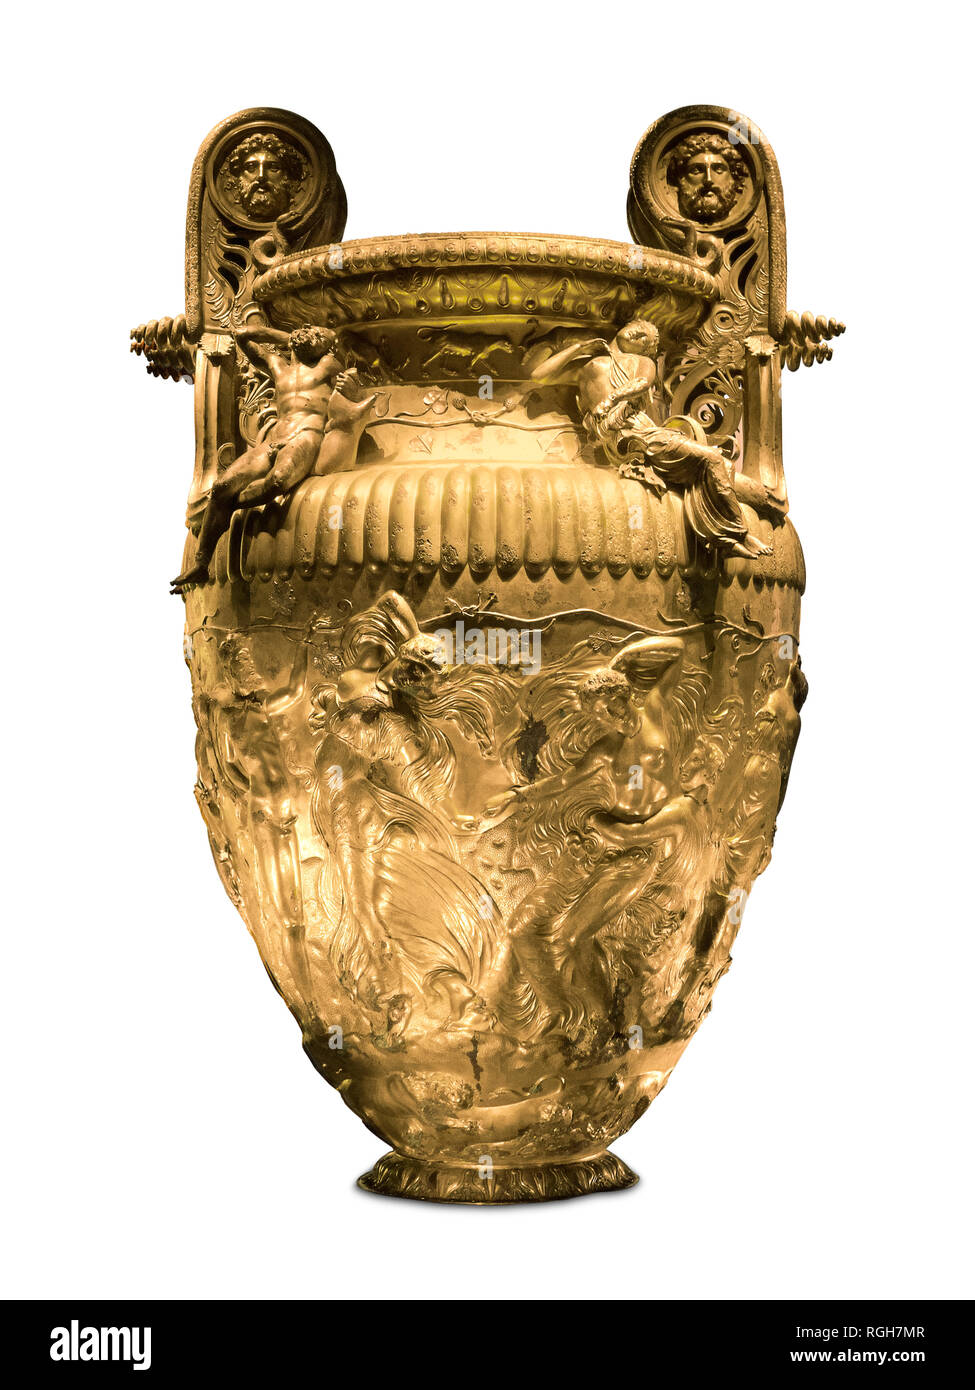 Ancient gold Greek krater - Stock Image